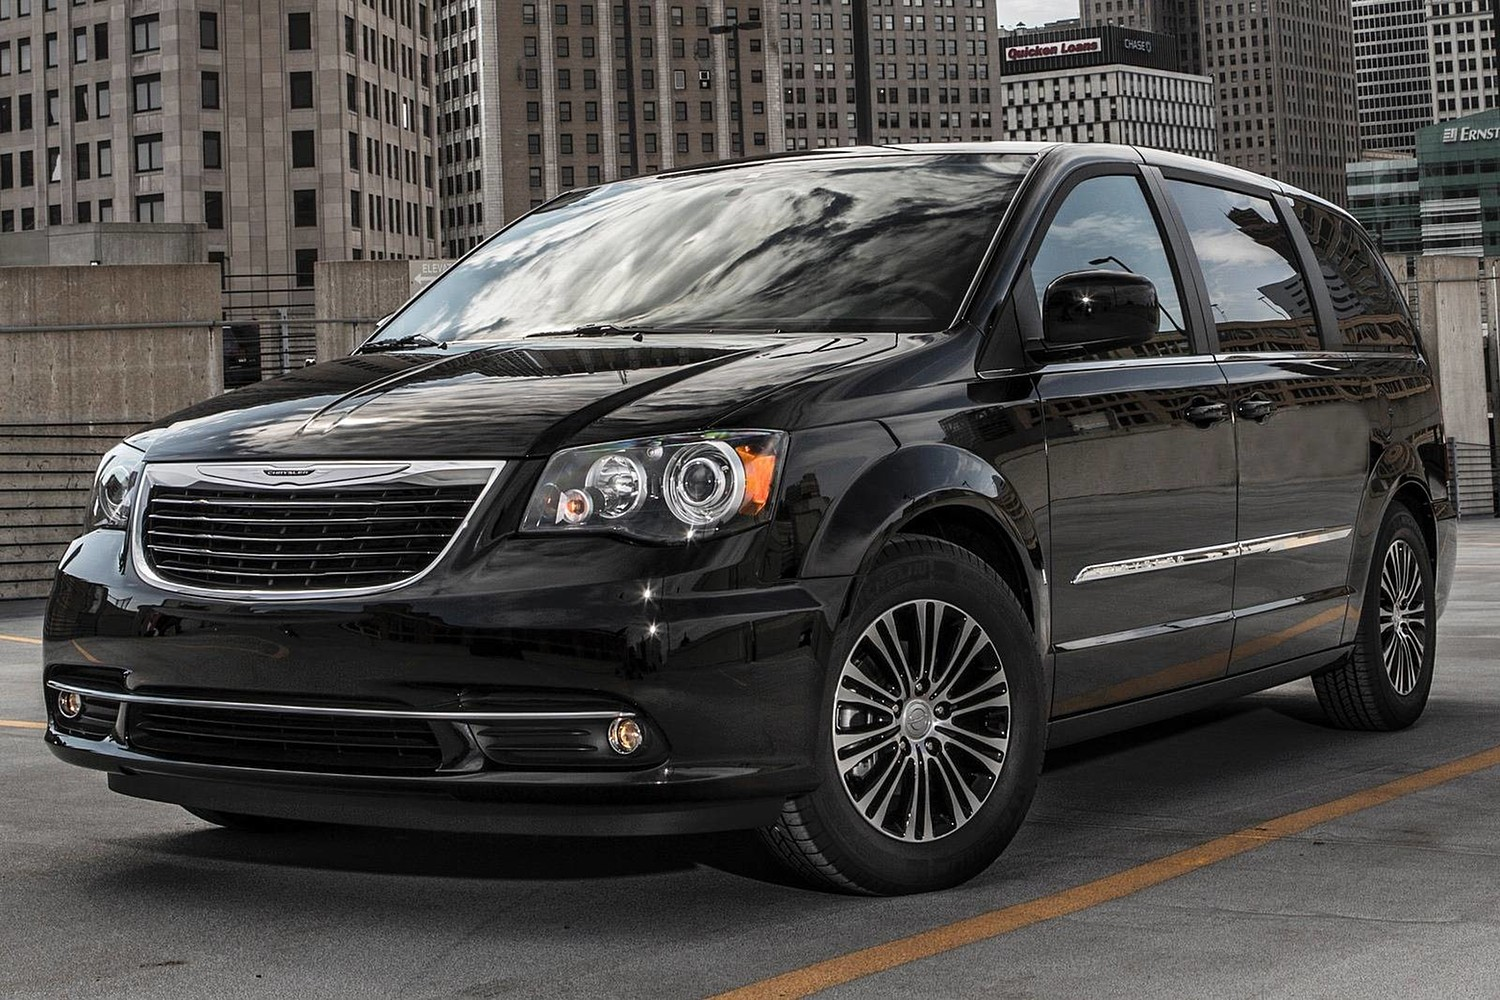 Chrysler Town and Country S Passenger Minivan Exterior (2013 model year shown)